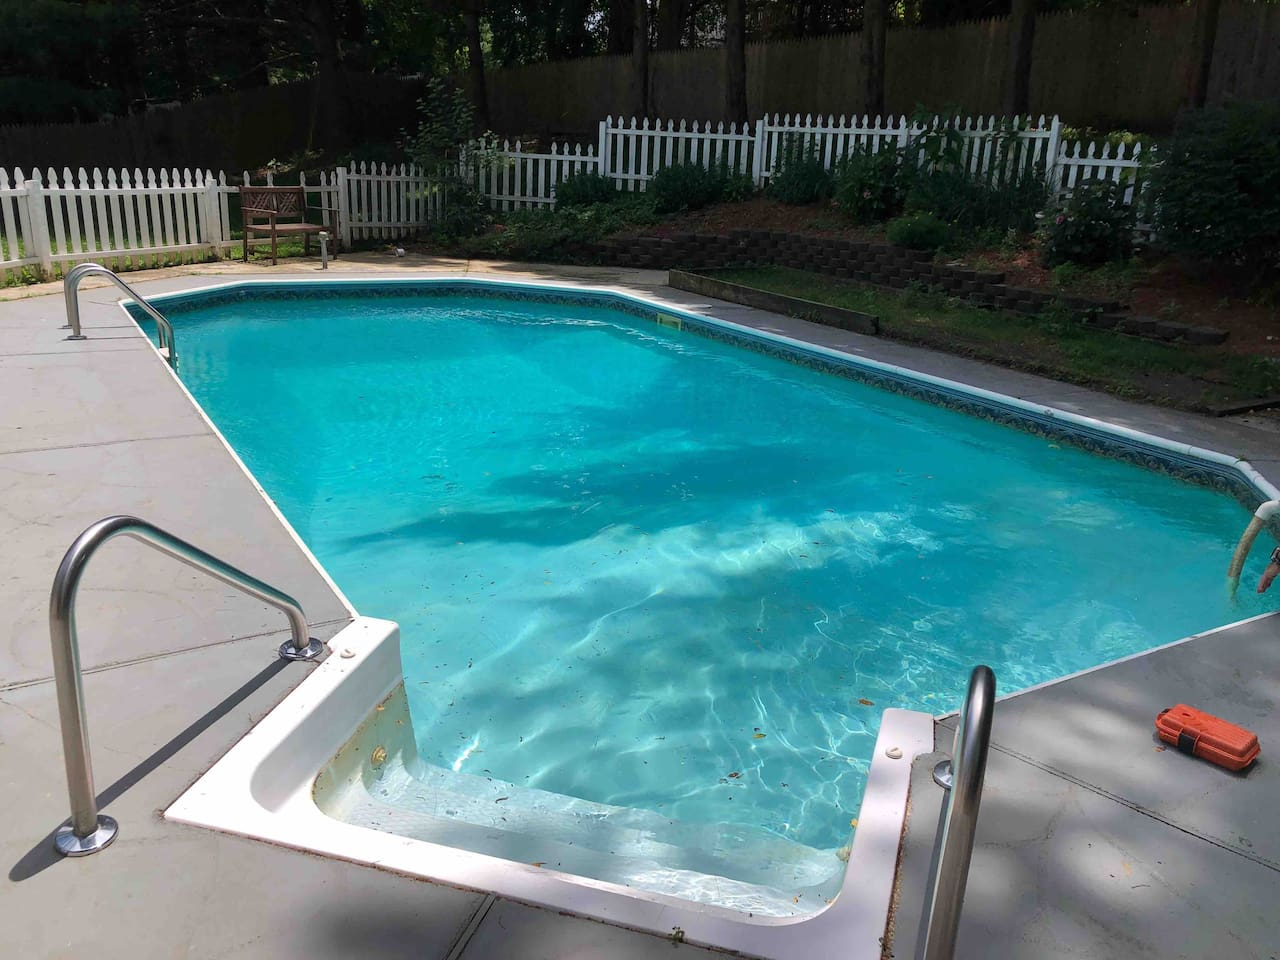 Fully Functional Outdoor Pool Perfect for Summer!